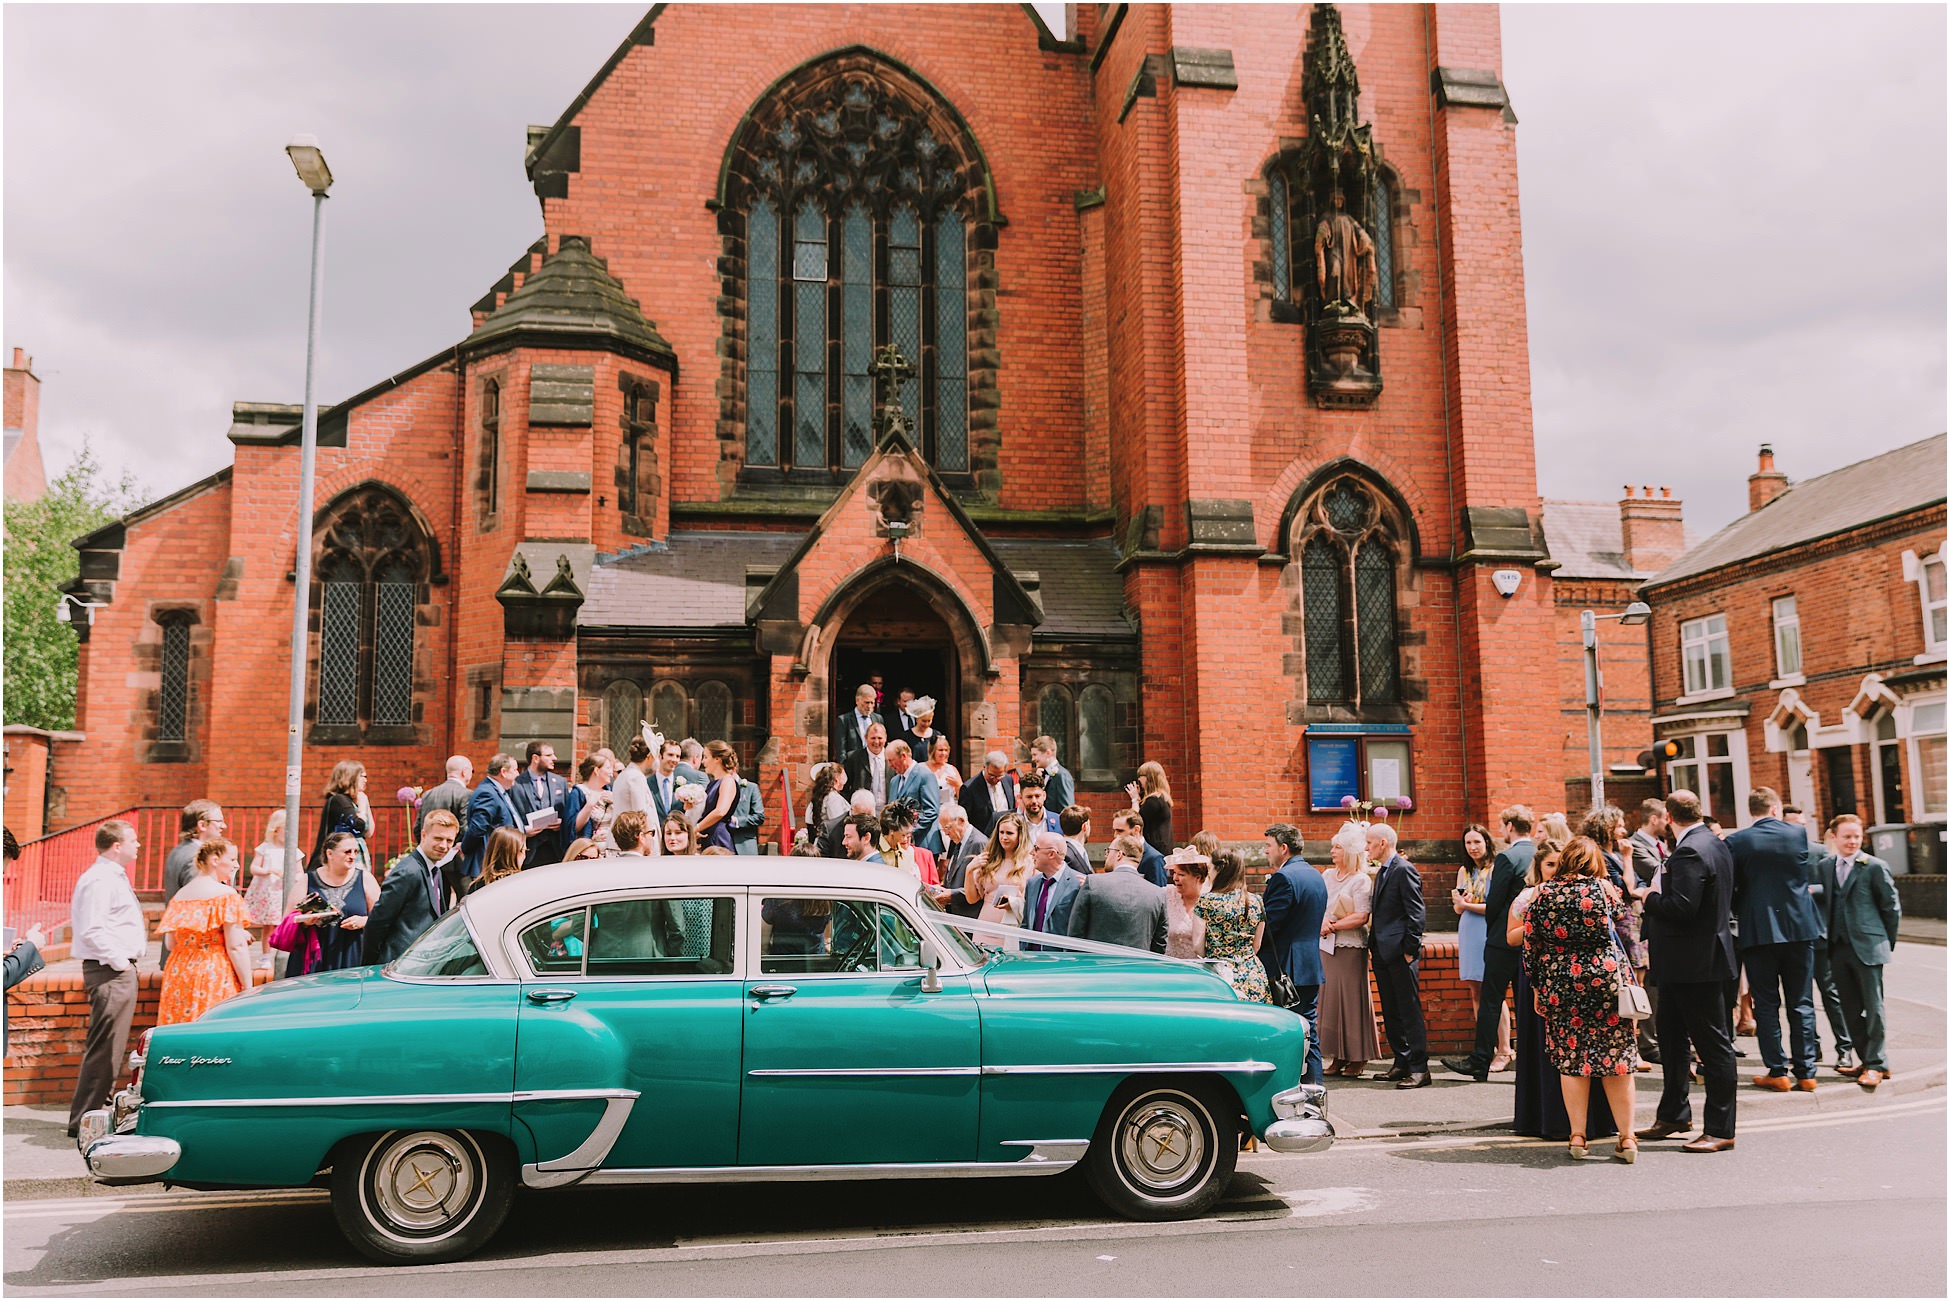 Wedding car and all wedding guests outside church at a Cheshire wedding